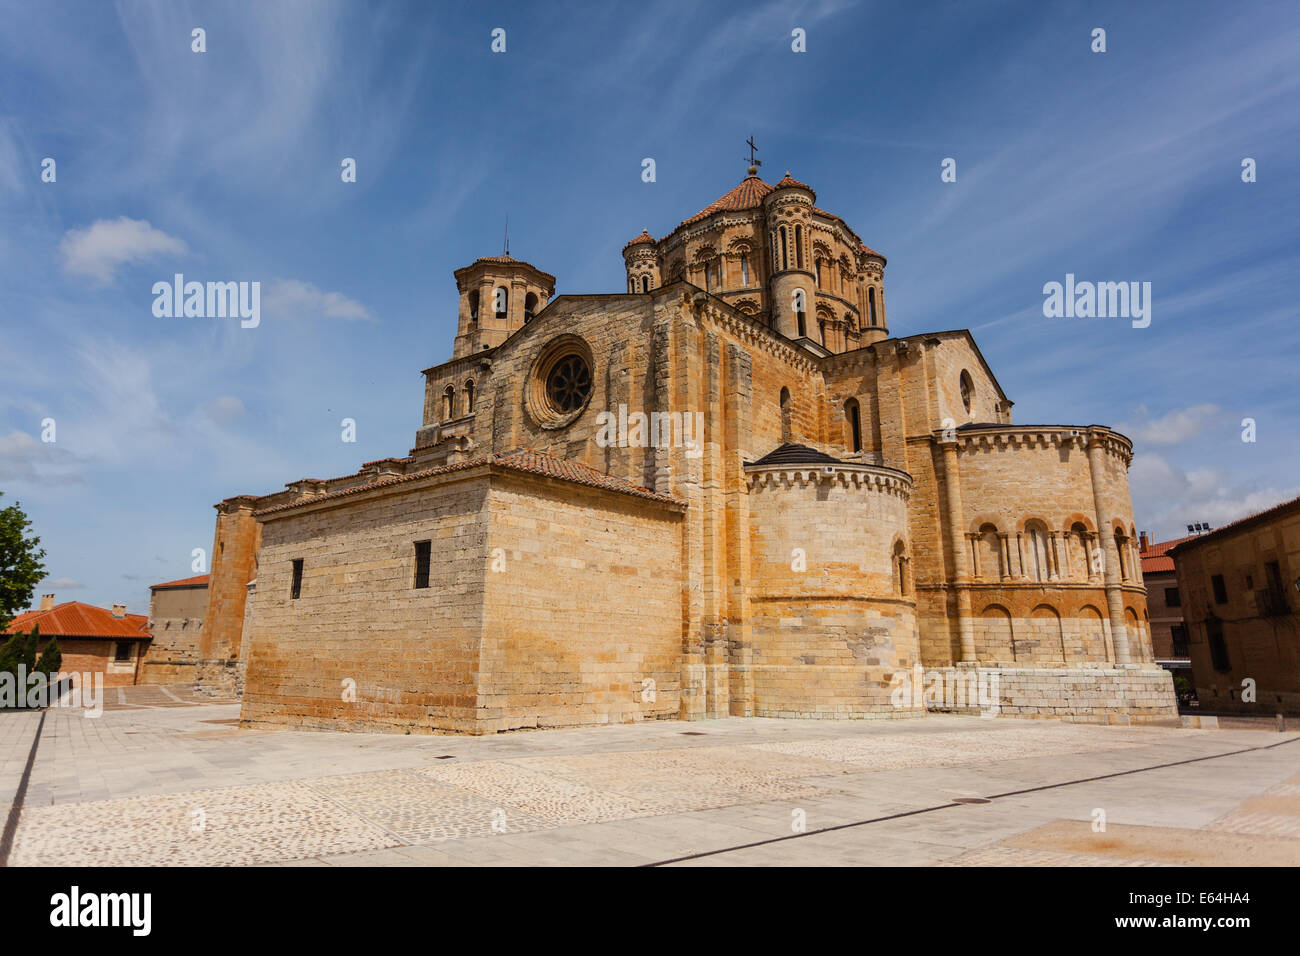 General view of Toro great romanesque collegiate church in Zamora ,Spain Stock Photo